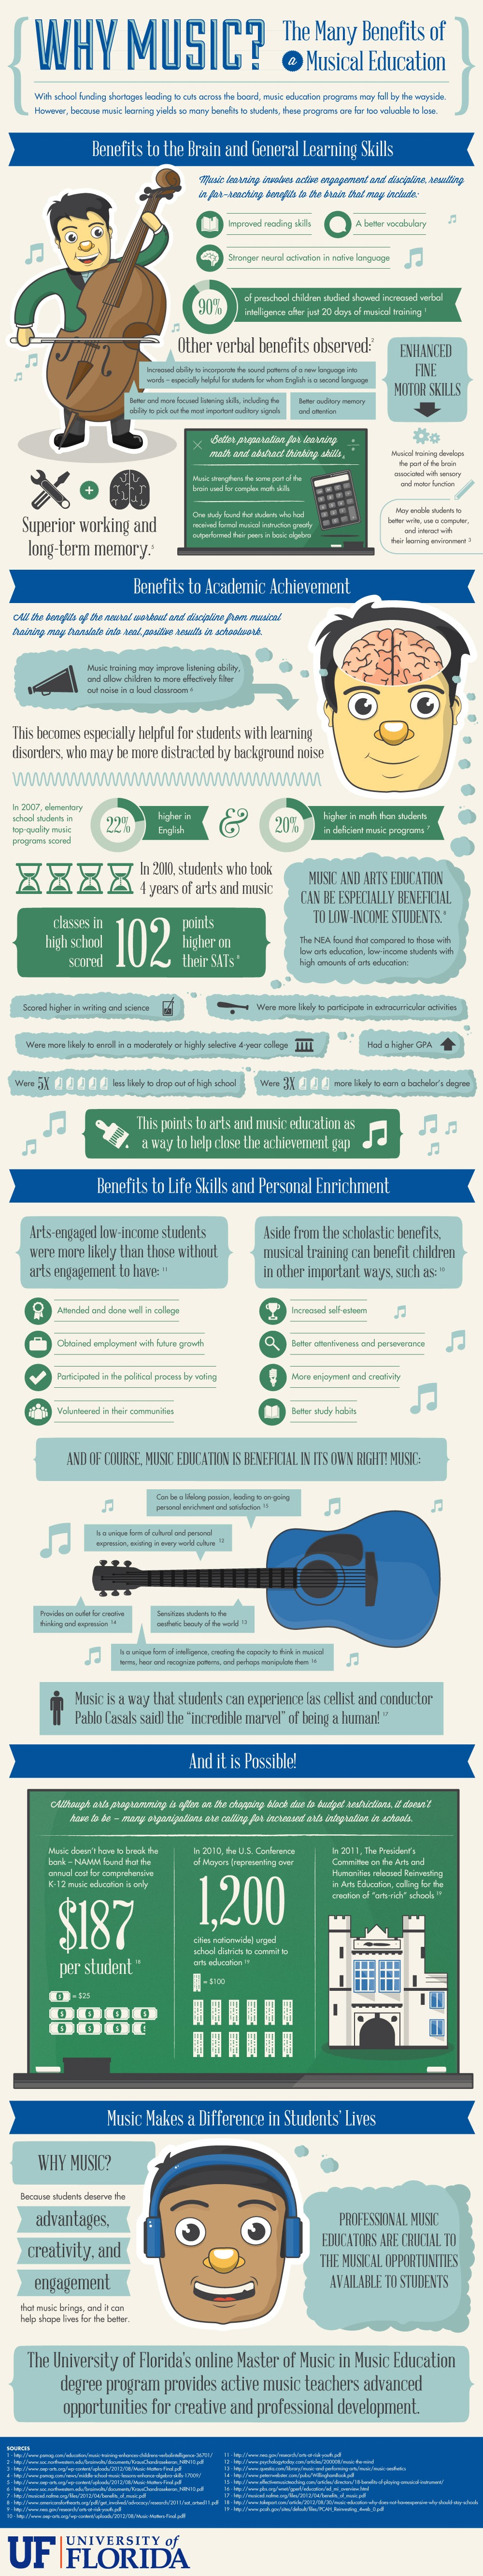 Why Music? The Many Benefits Of Musical Education #Infographic